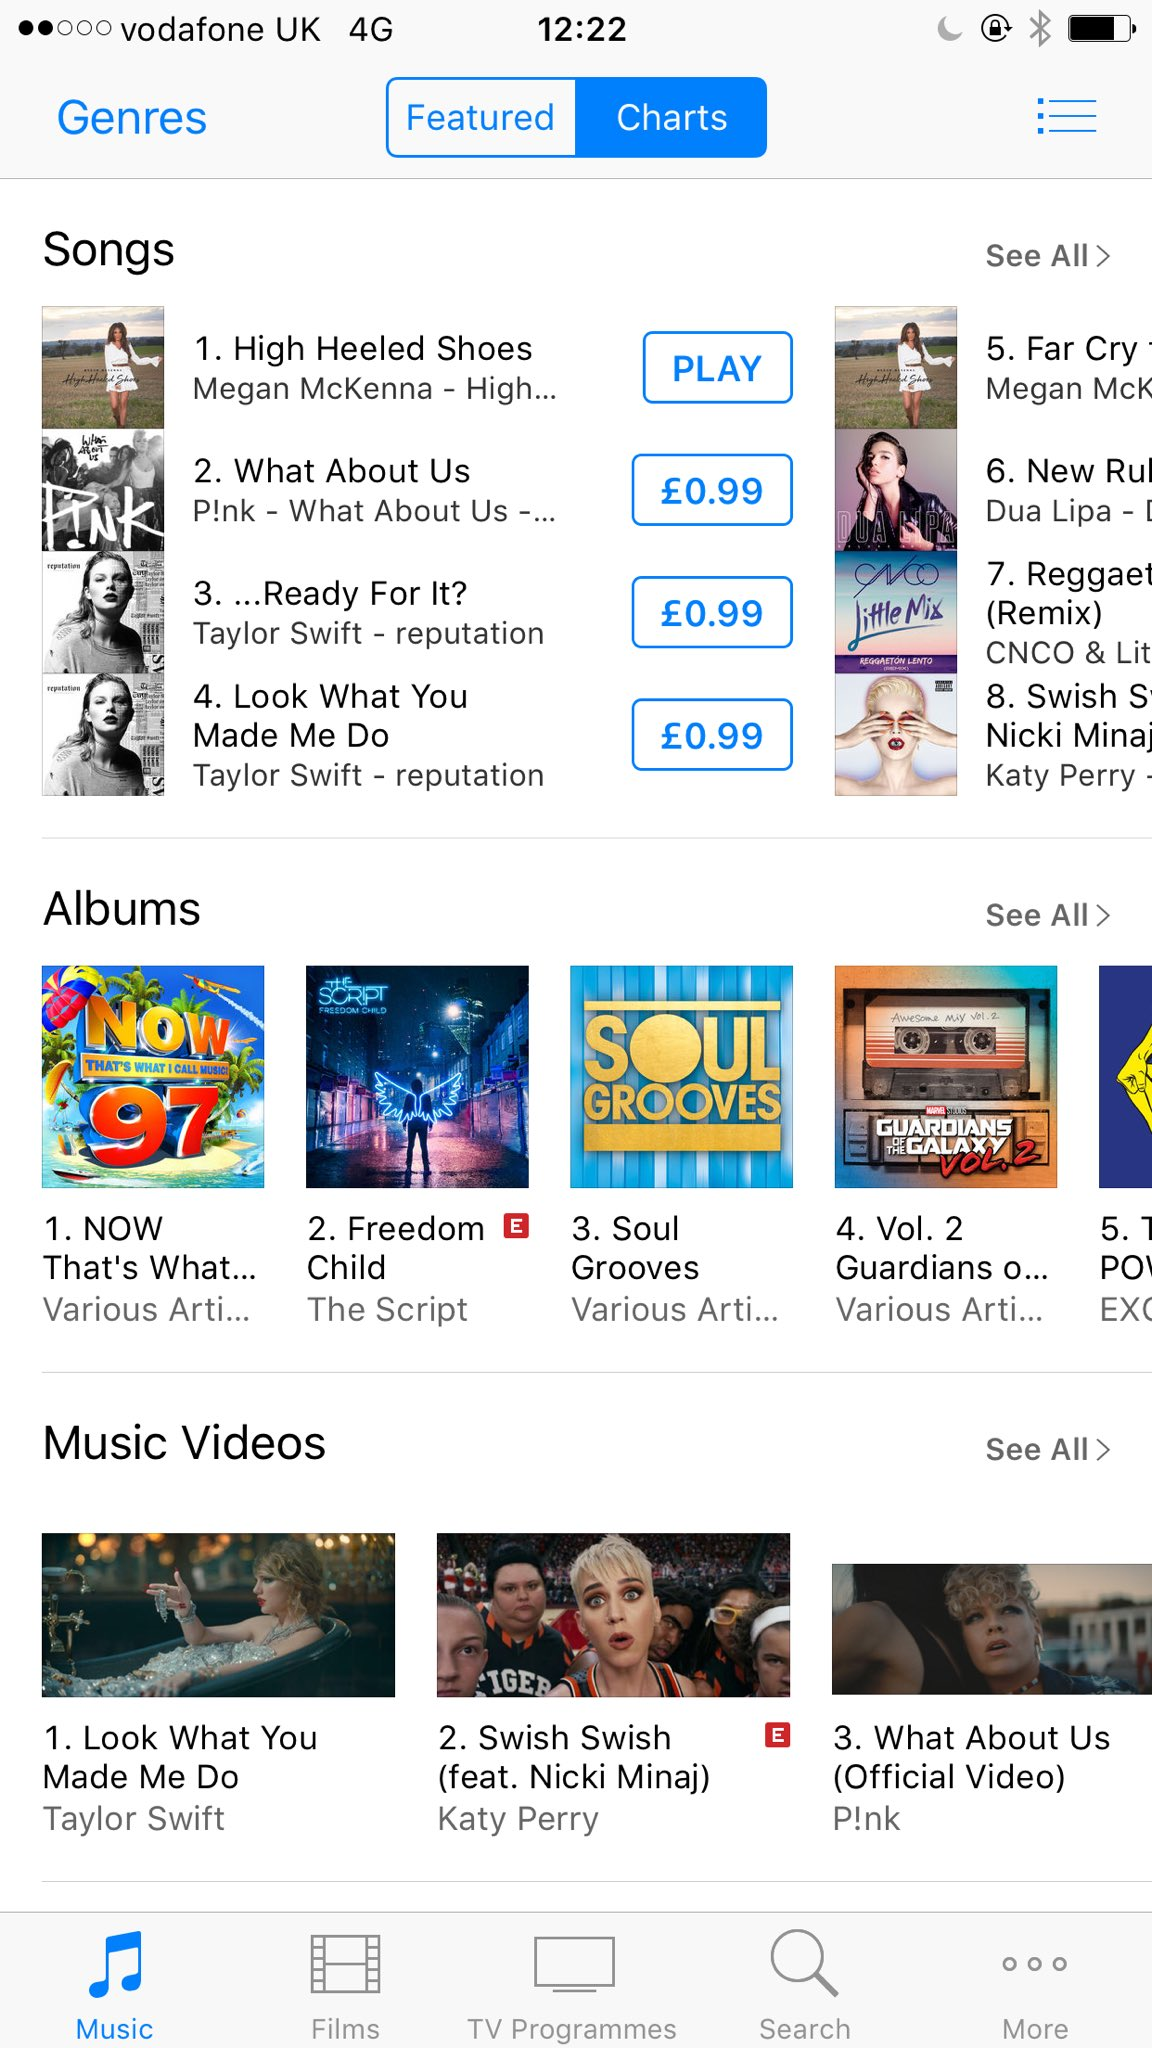 RT @P_Wicks01: She's only gone and done it!! @Megan_Mckenna_  #Number1 ❤️❤️❤️❤️❤️❤️❤️❤️ https://t.co/fQBHc2vNKP